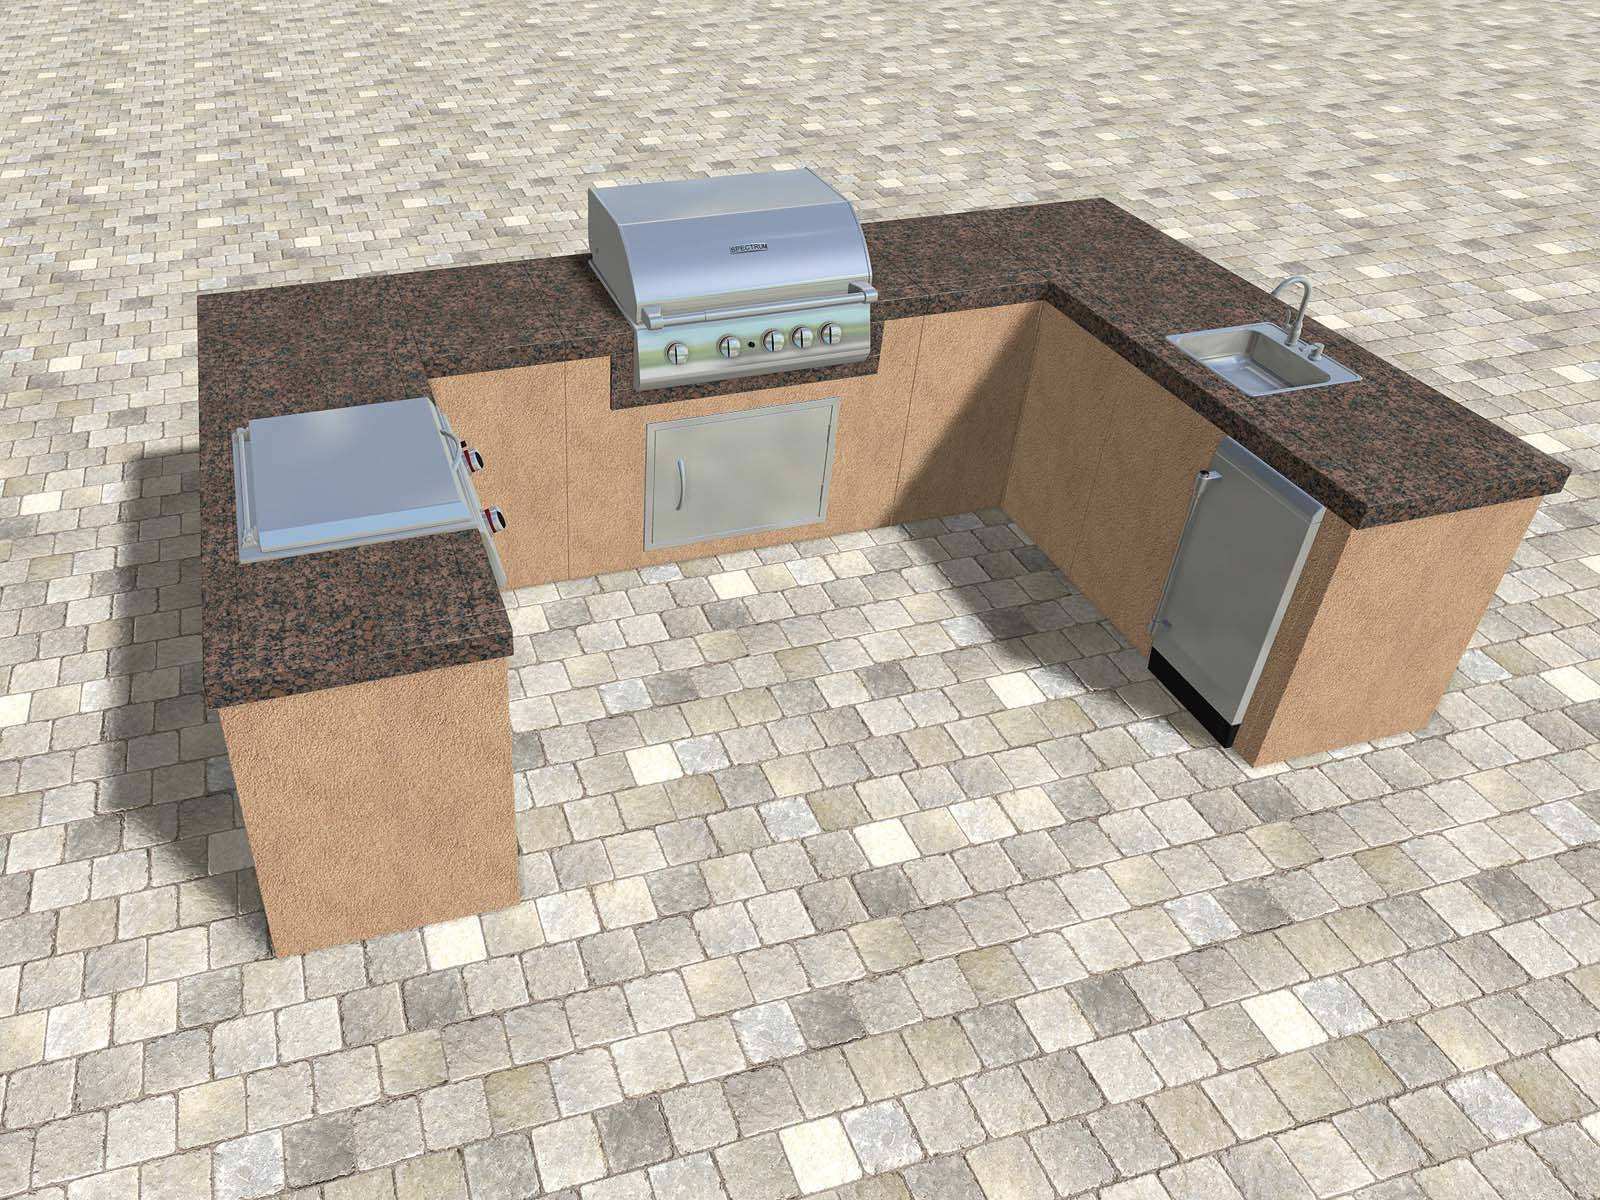 Outdoor Kitchen Created using the Modular Components